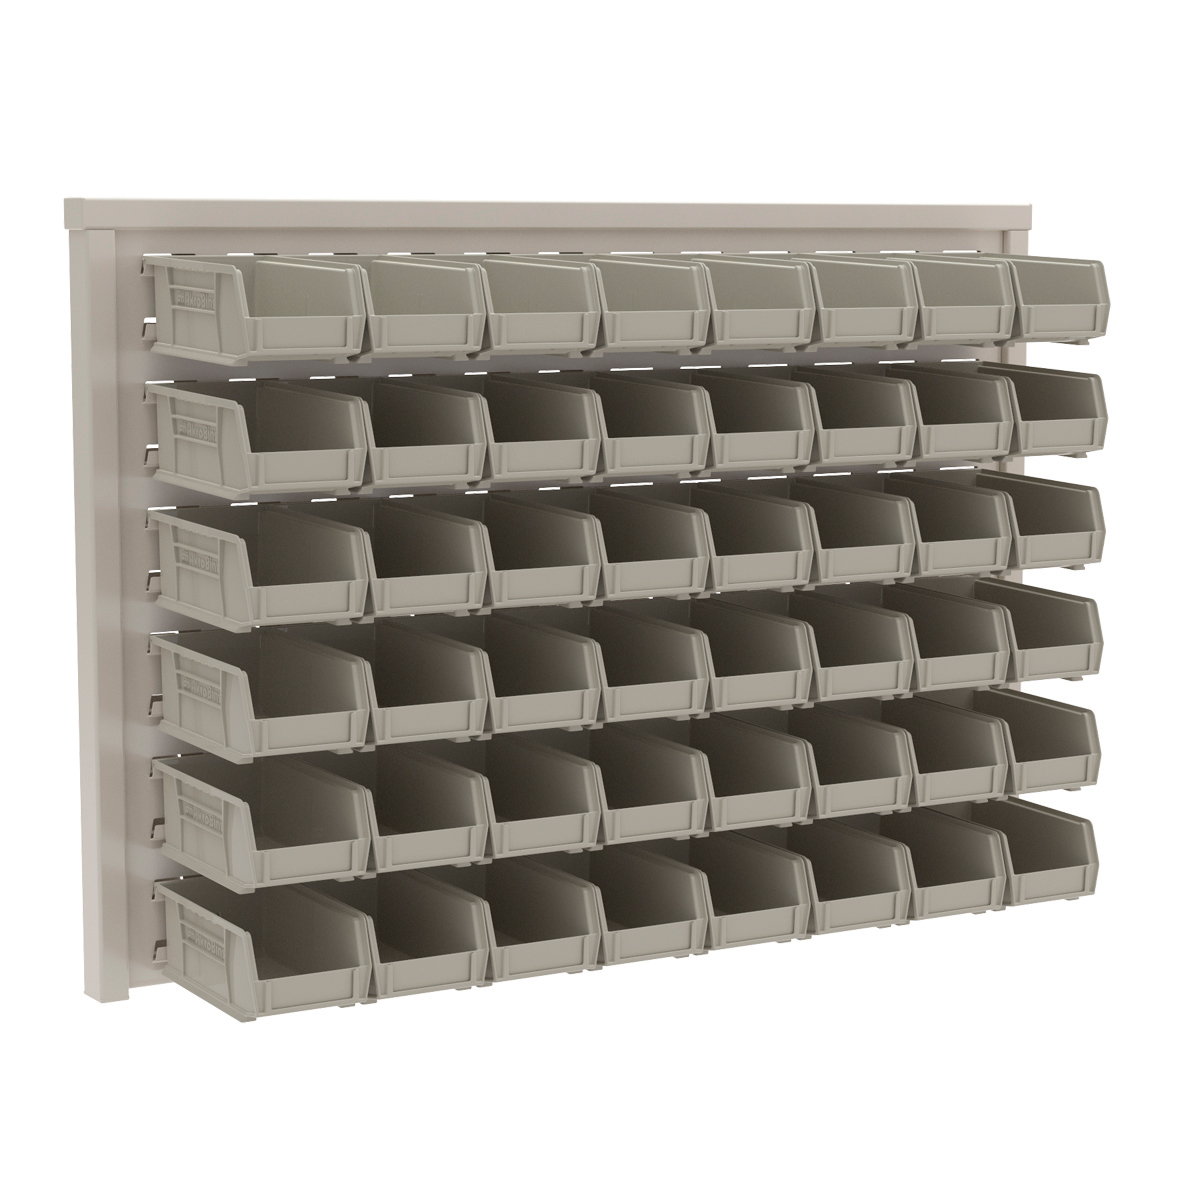 Item DISCONTINUED by Manufacturer.  ReadySpace Wall Rack w/ 48 AkroBins 30220STONE, White (30536220S).  This item sold in carton quantities of 1.